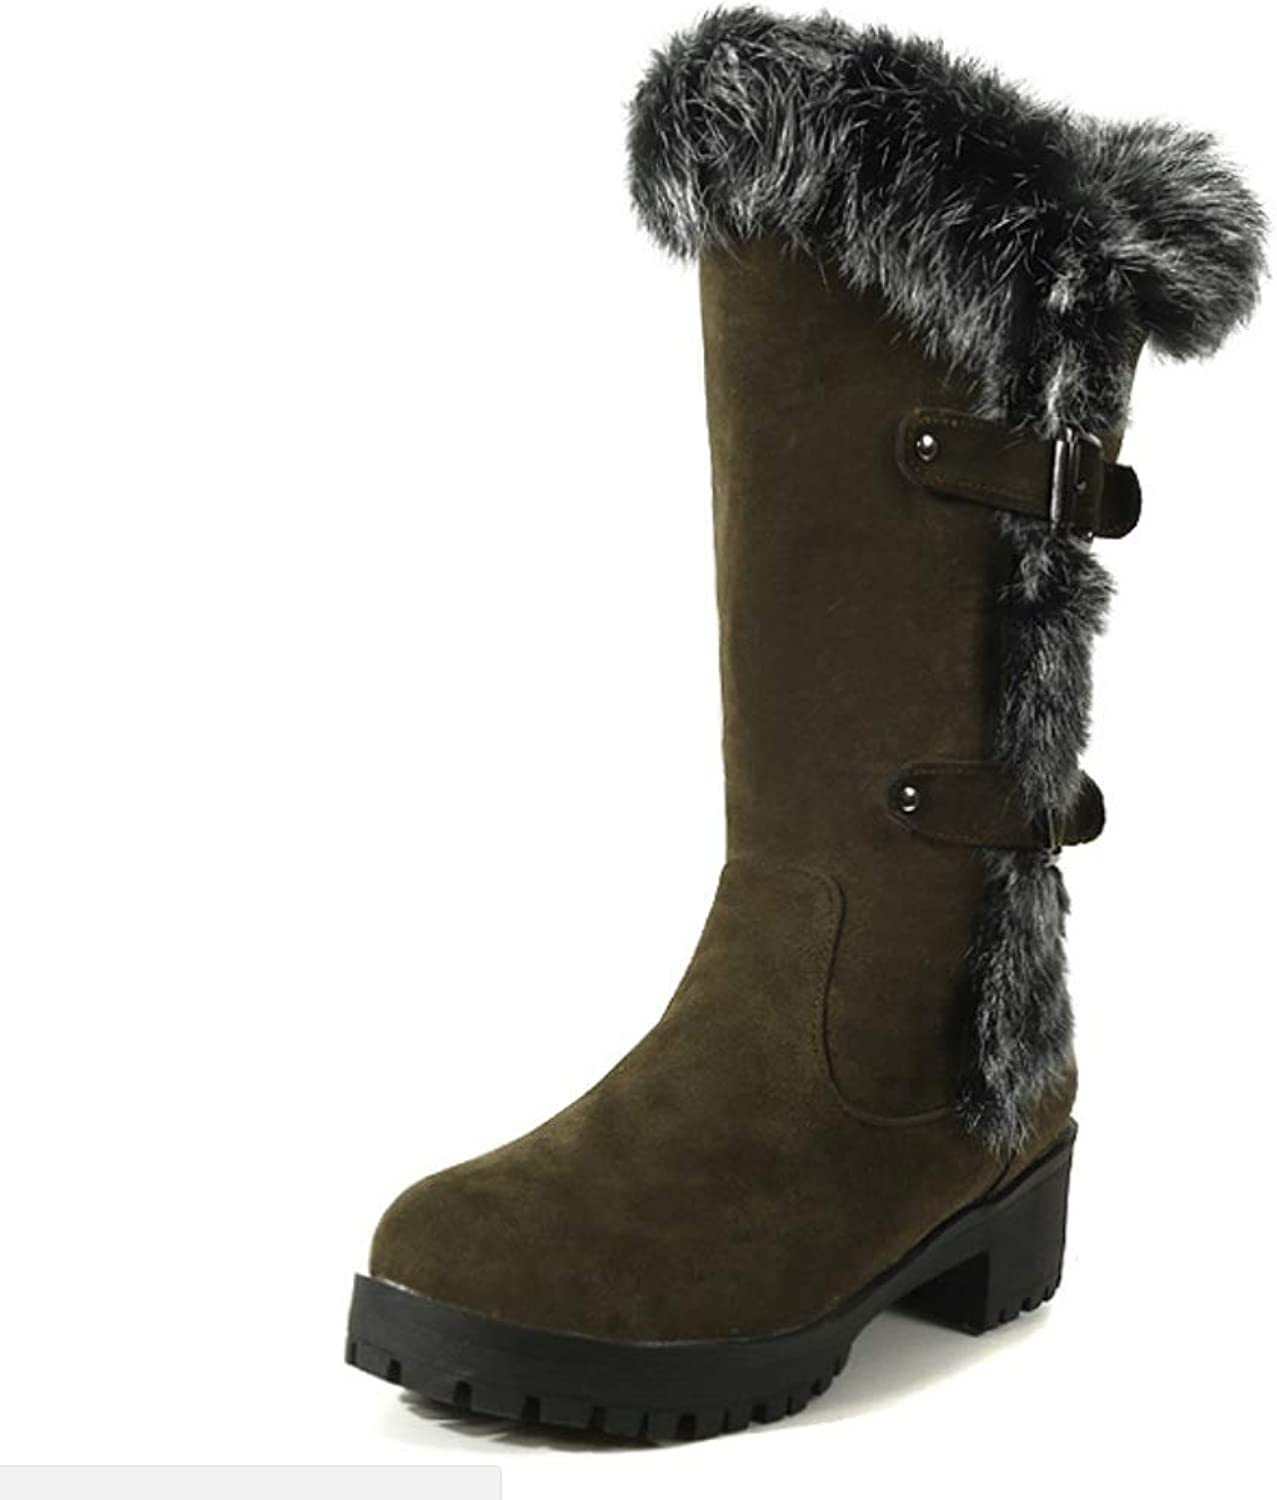 Ladies Women Winter Flat Calf Boots Trainer Buckle Casual Boots Fur Lined Grip Sole Comfortable Warm Size Equestrian Thick Sneakers